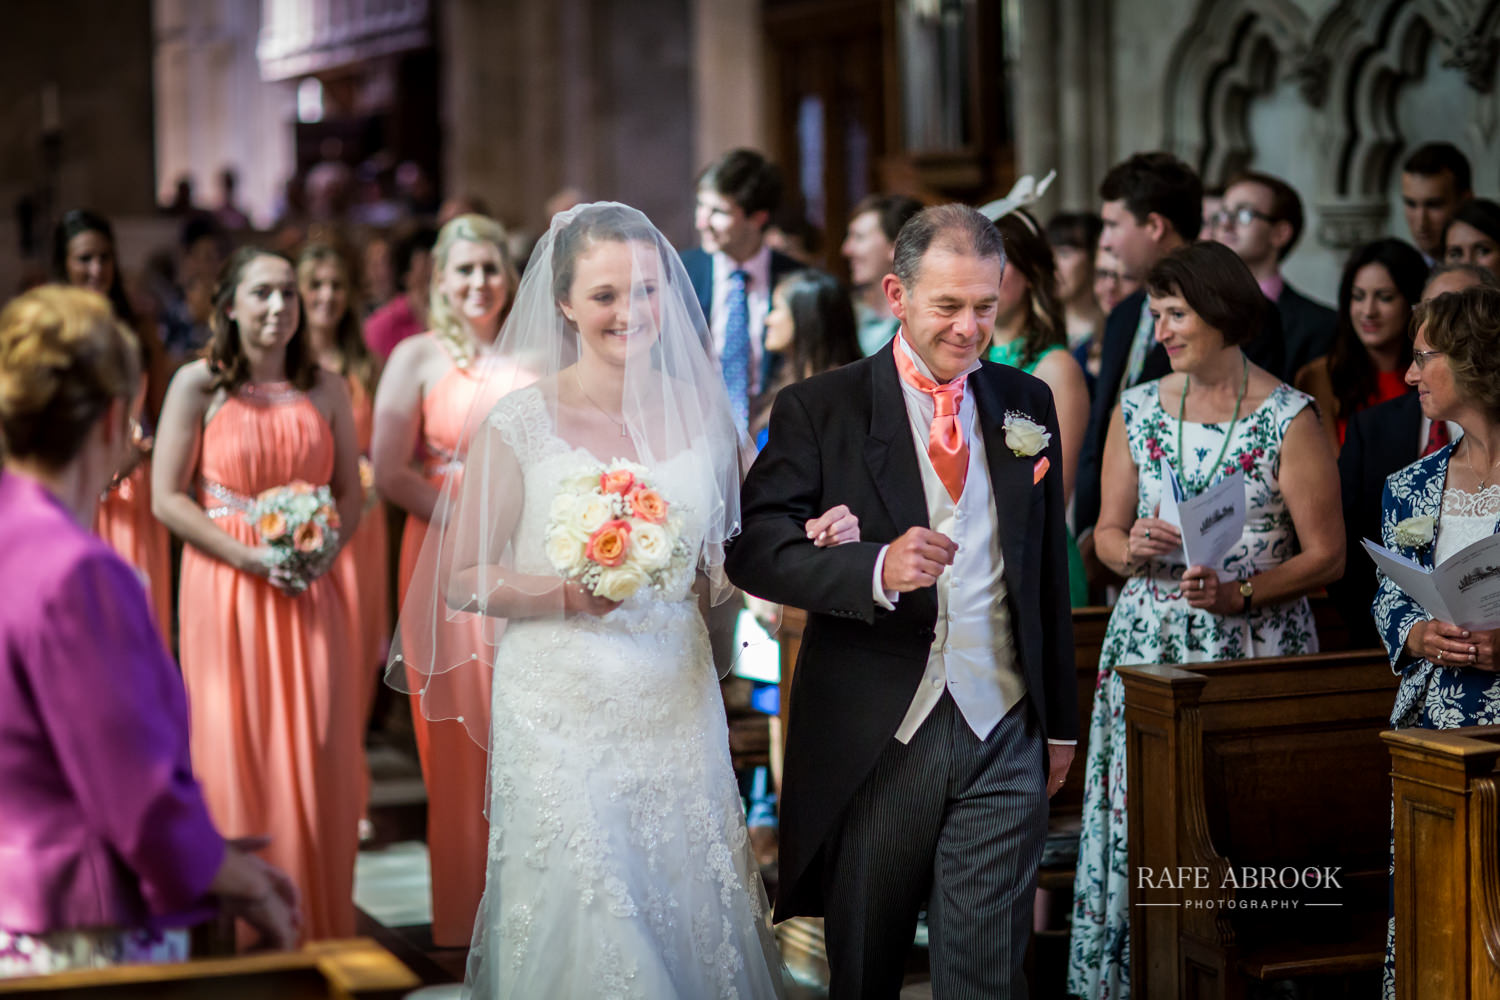 st albans cathedral wedding harpenden rafe abrook photography hertfordshire wedding photographer-1015.jpg